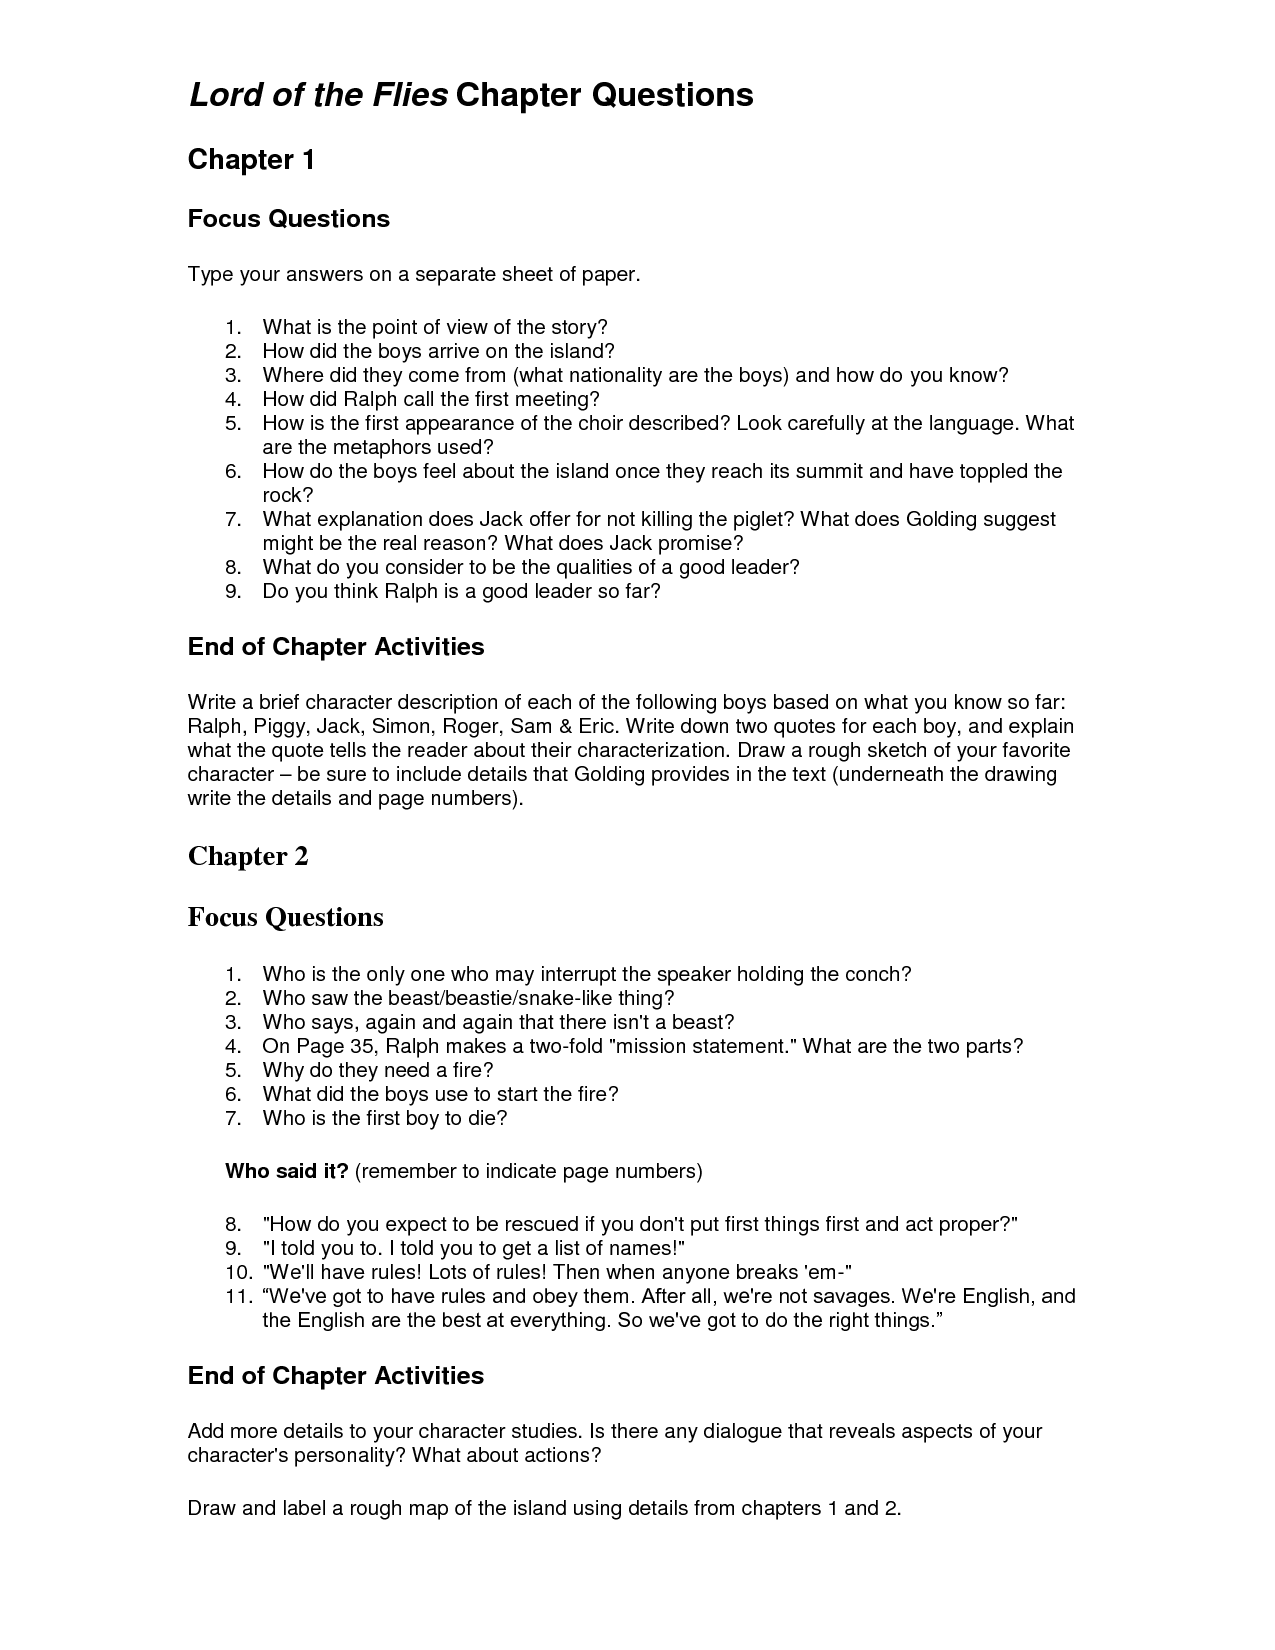 essay questions for lord of the flies essay topics lord of the flies quotes page numbers quotesgram